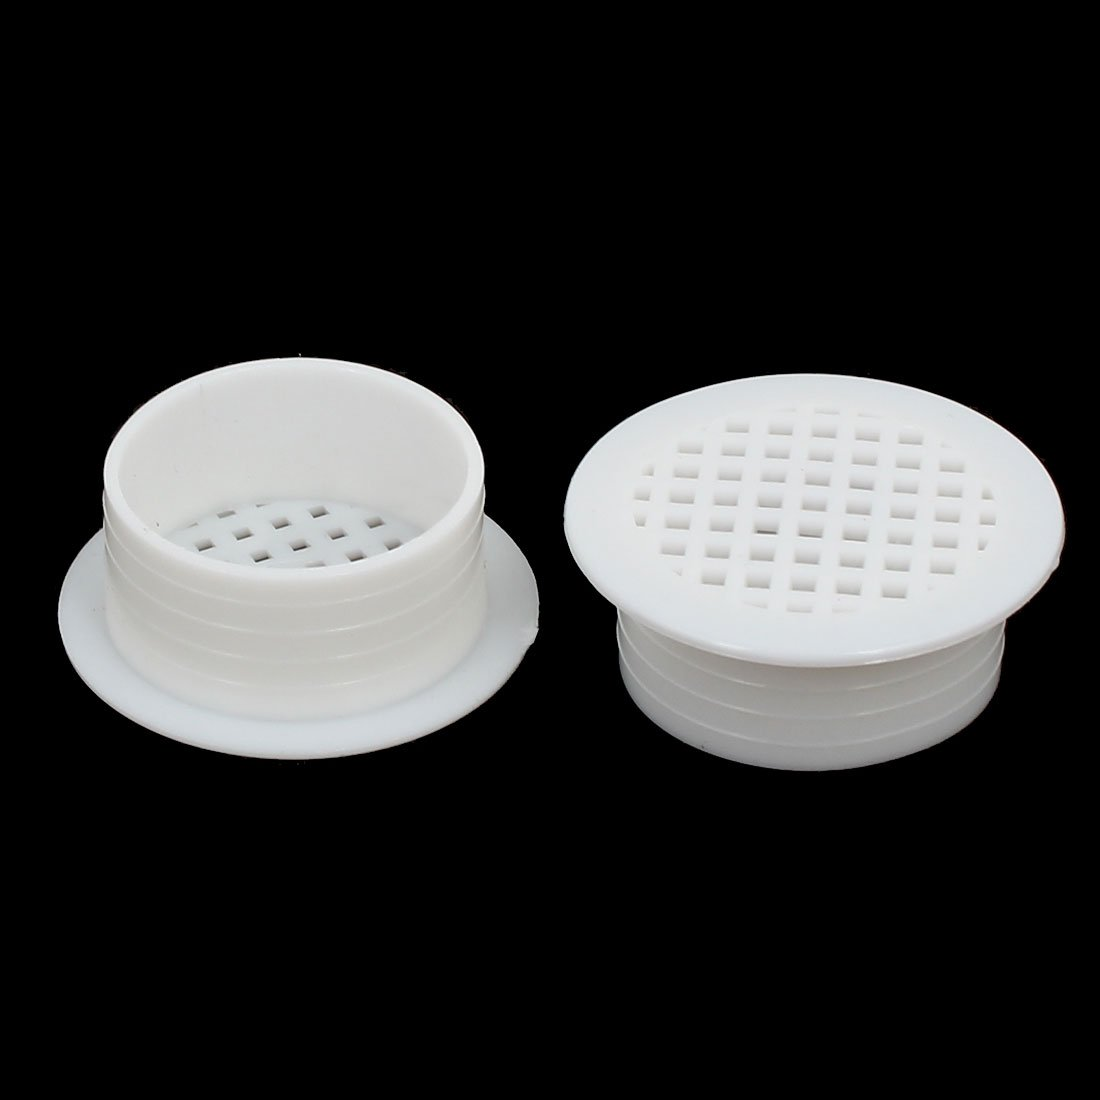 uxcell Shoes Cabinet 35mm Plastic Square Mesh Hole Air Vent Louver Cover White 30pcs by uxcell (Image #2)